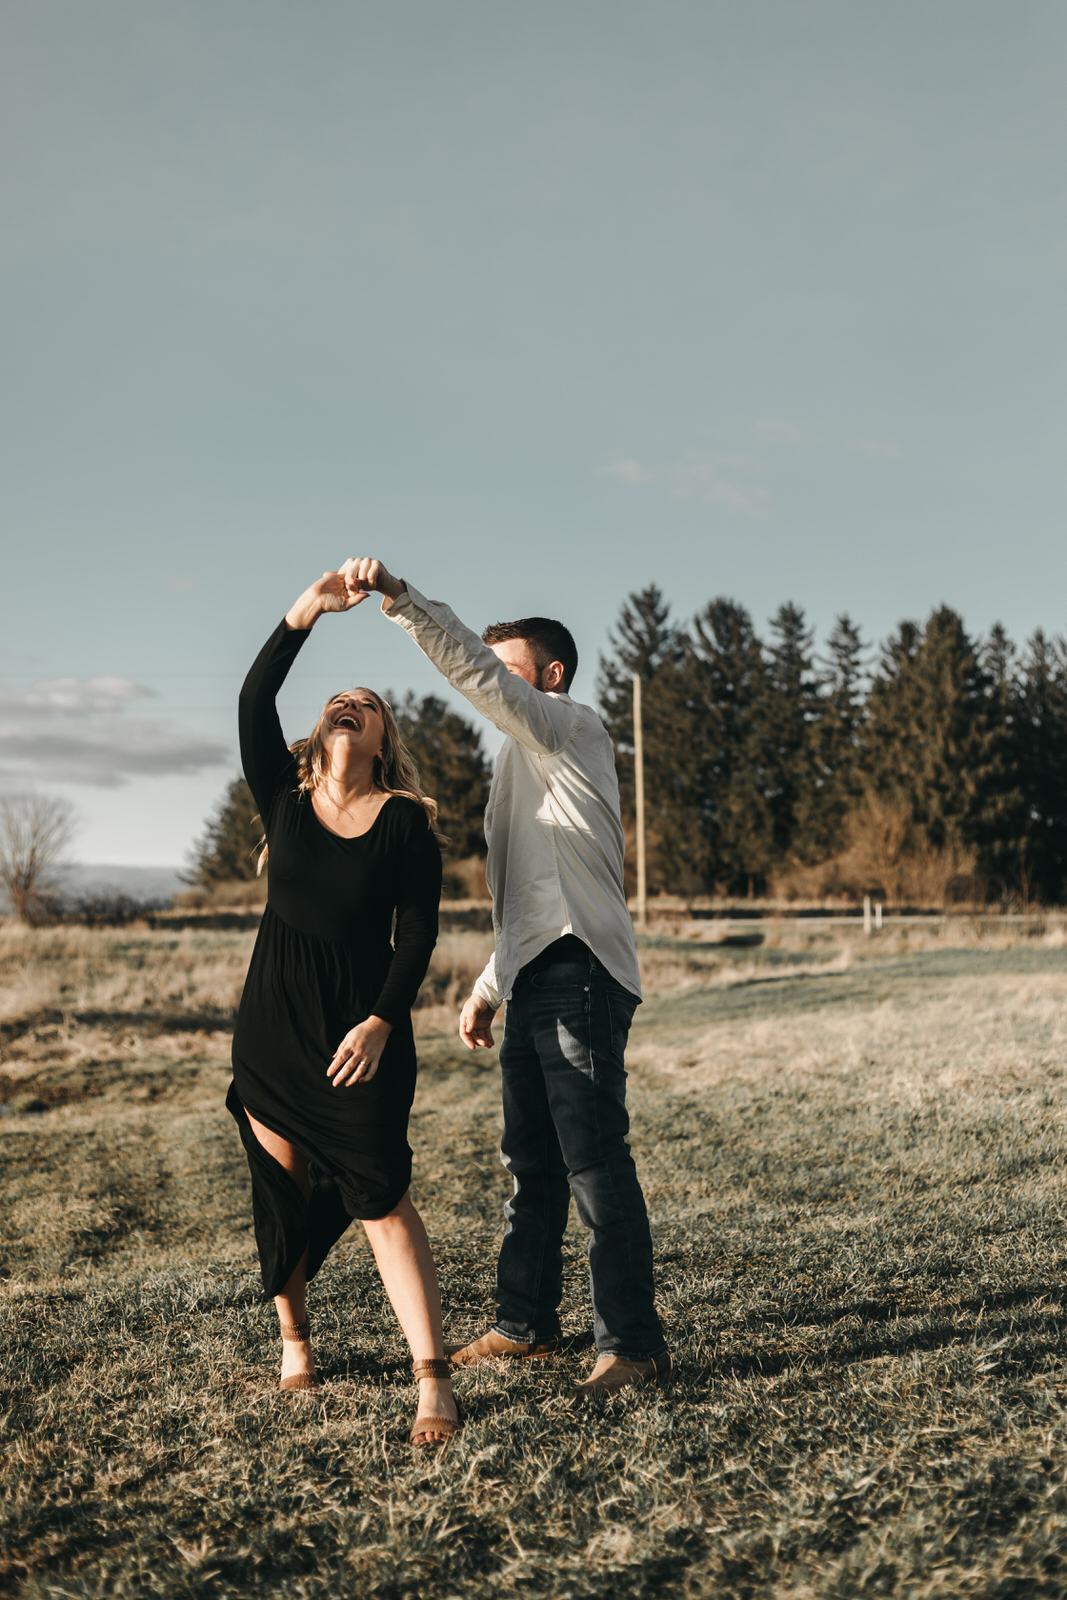 Lauren & Tom Adventurous Outdoor Engagement Family Farm Dancing